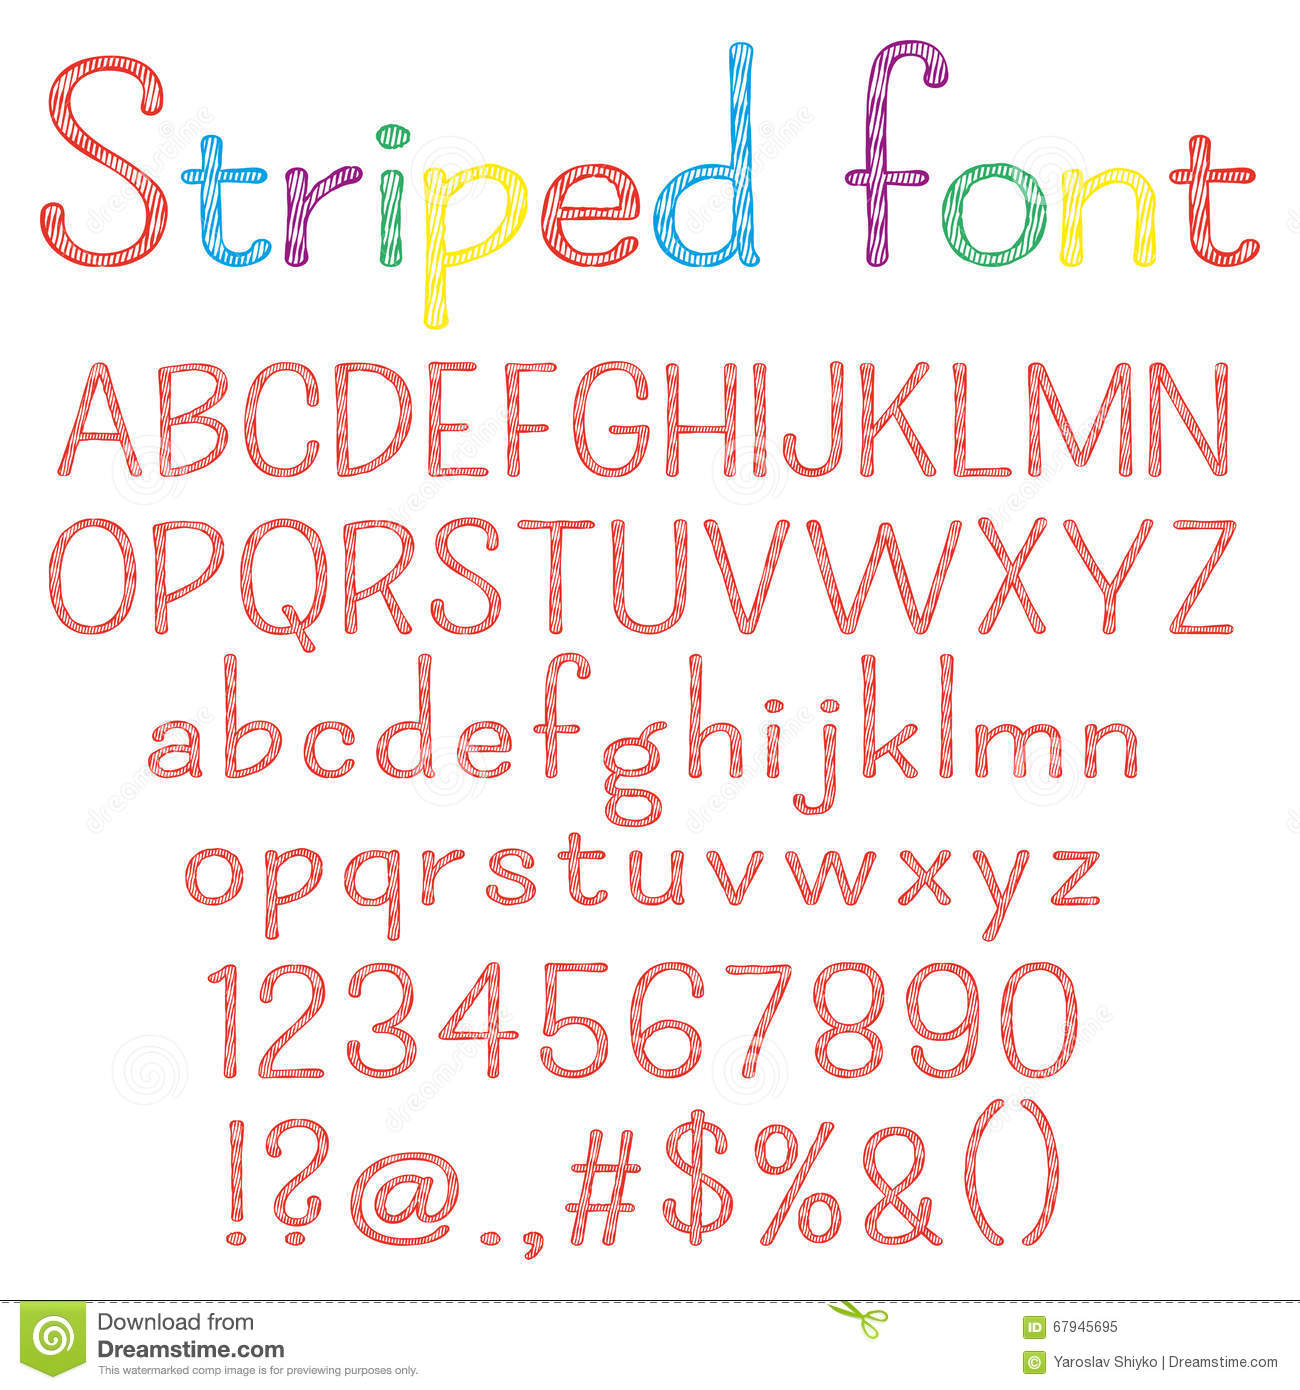 Spriped Font Alphabet Numbers Punctuation Marks One Letter Compound Path Easy To Change Colors For Your Design